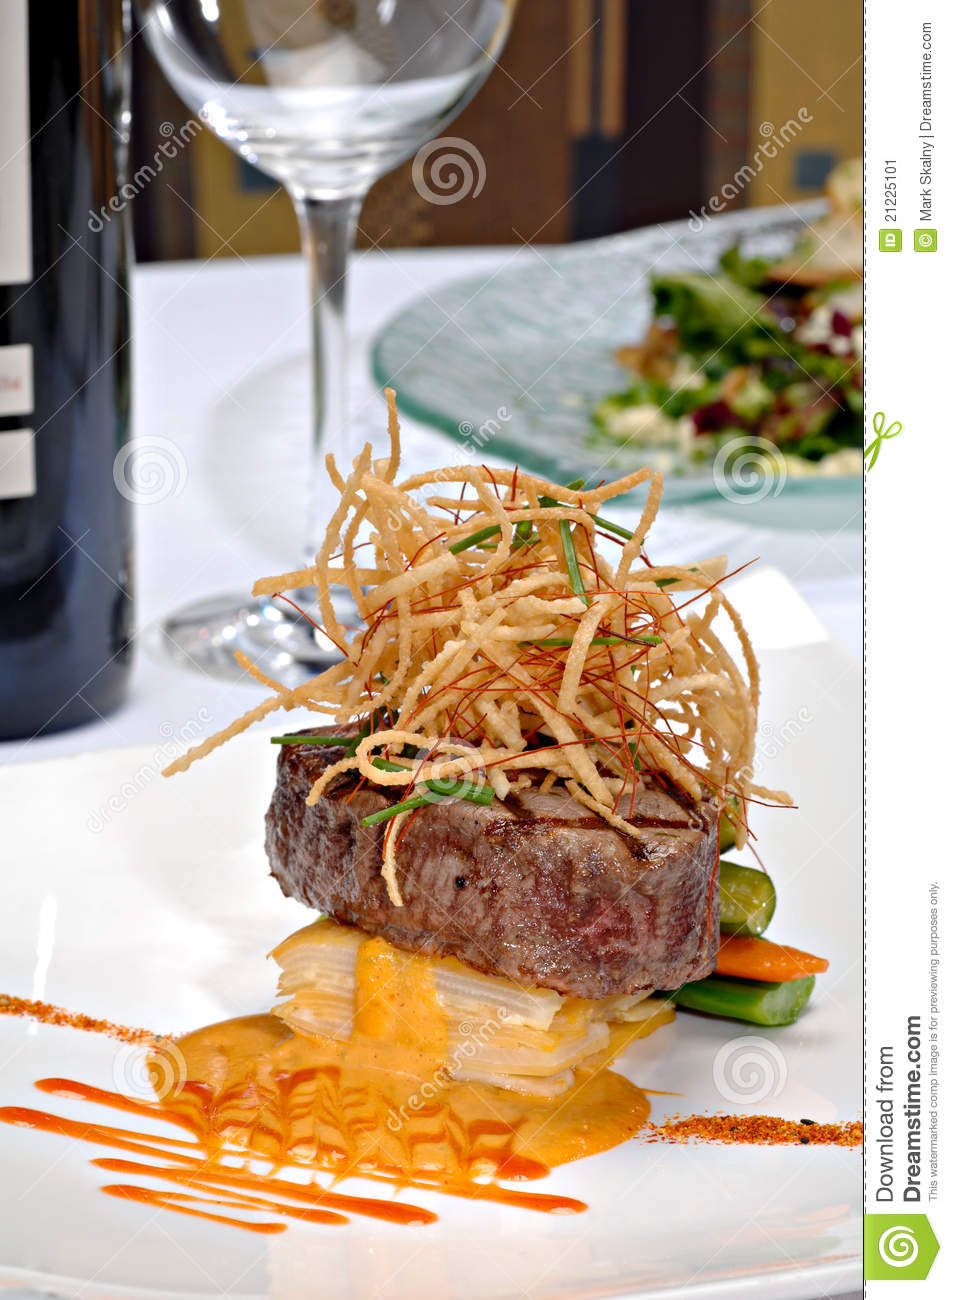 Plated Filet Mignon Stock Image - Image: 21225101